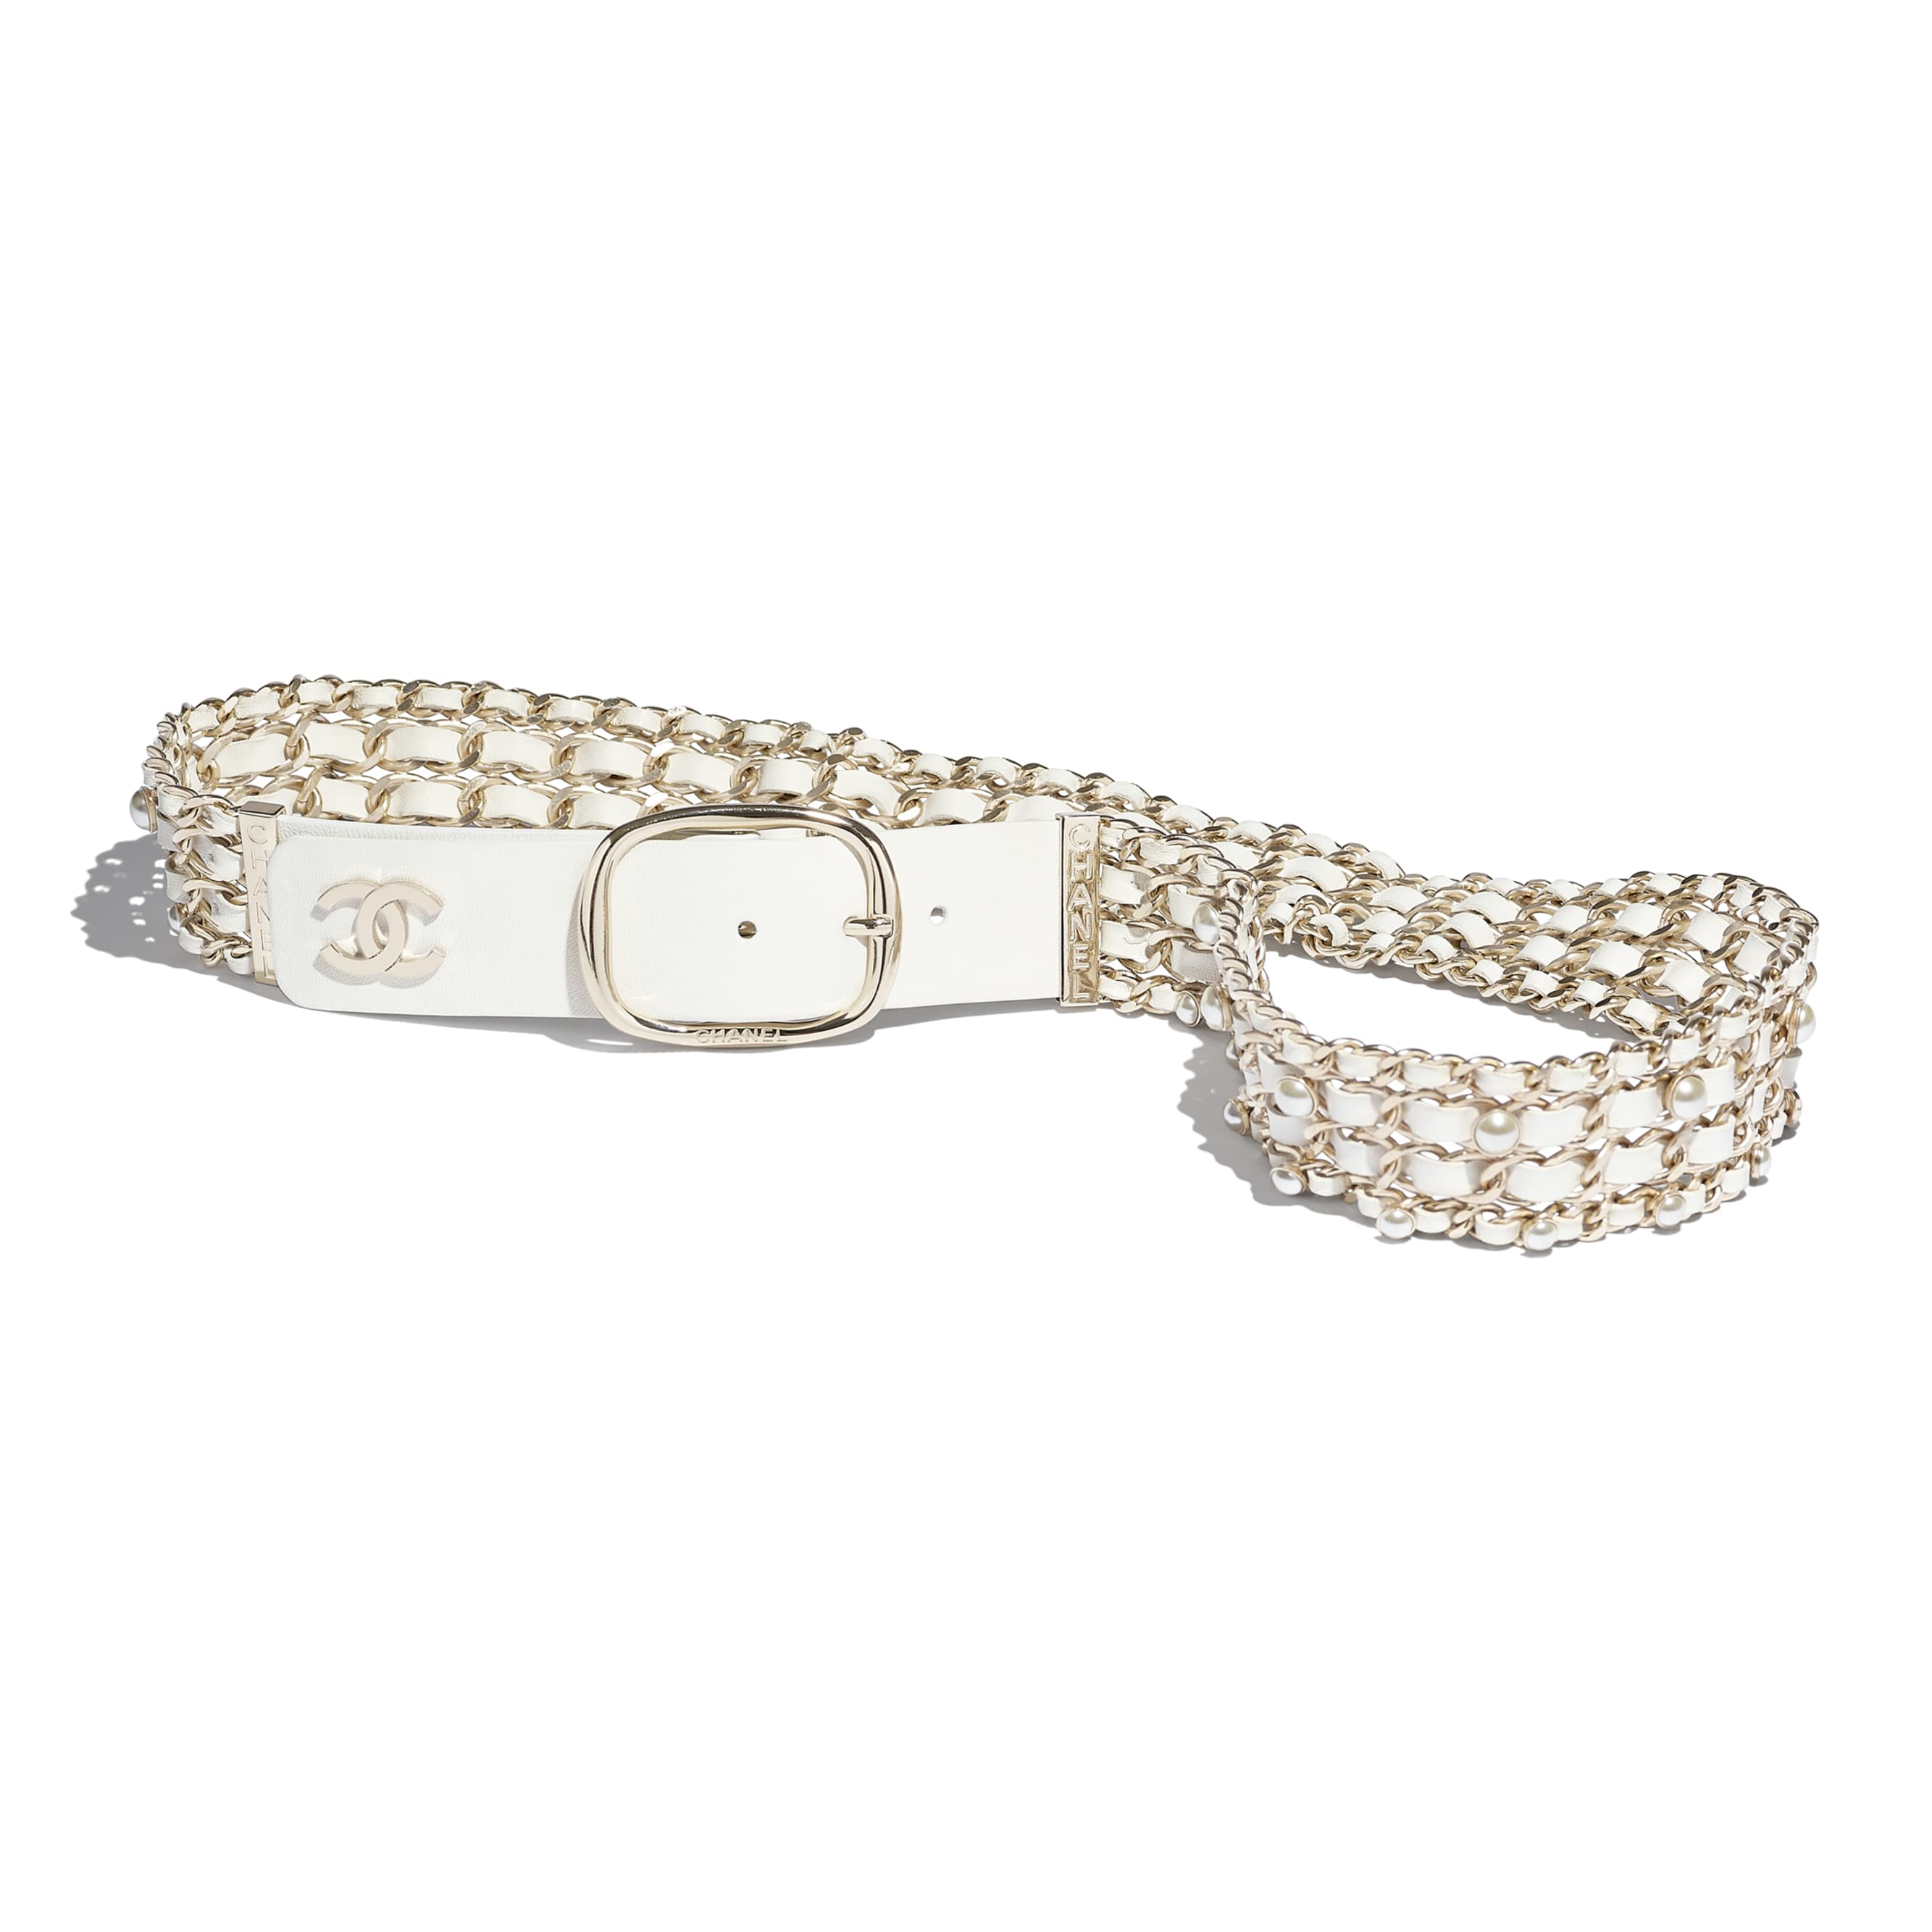 Belt - White - Lambskin, Gold-Tone Metal & Glass Pearls - Default view - see standard sized version